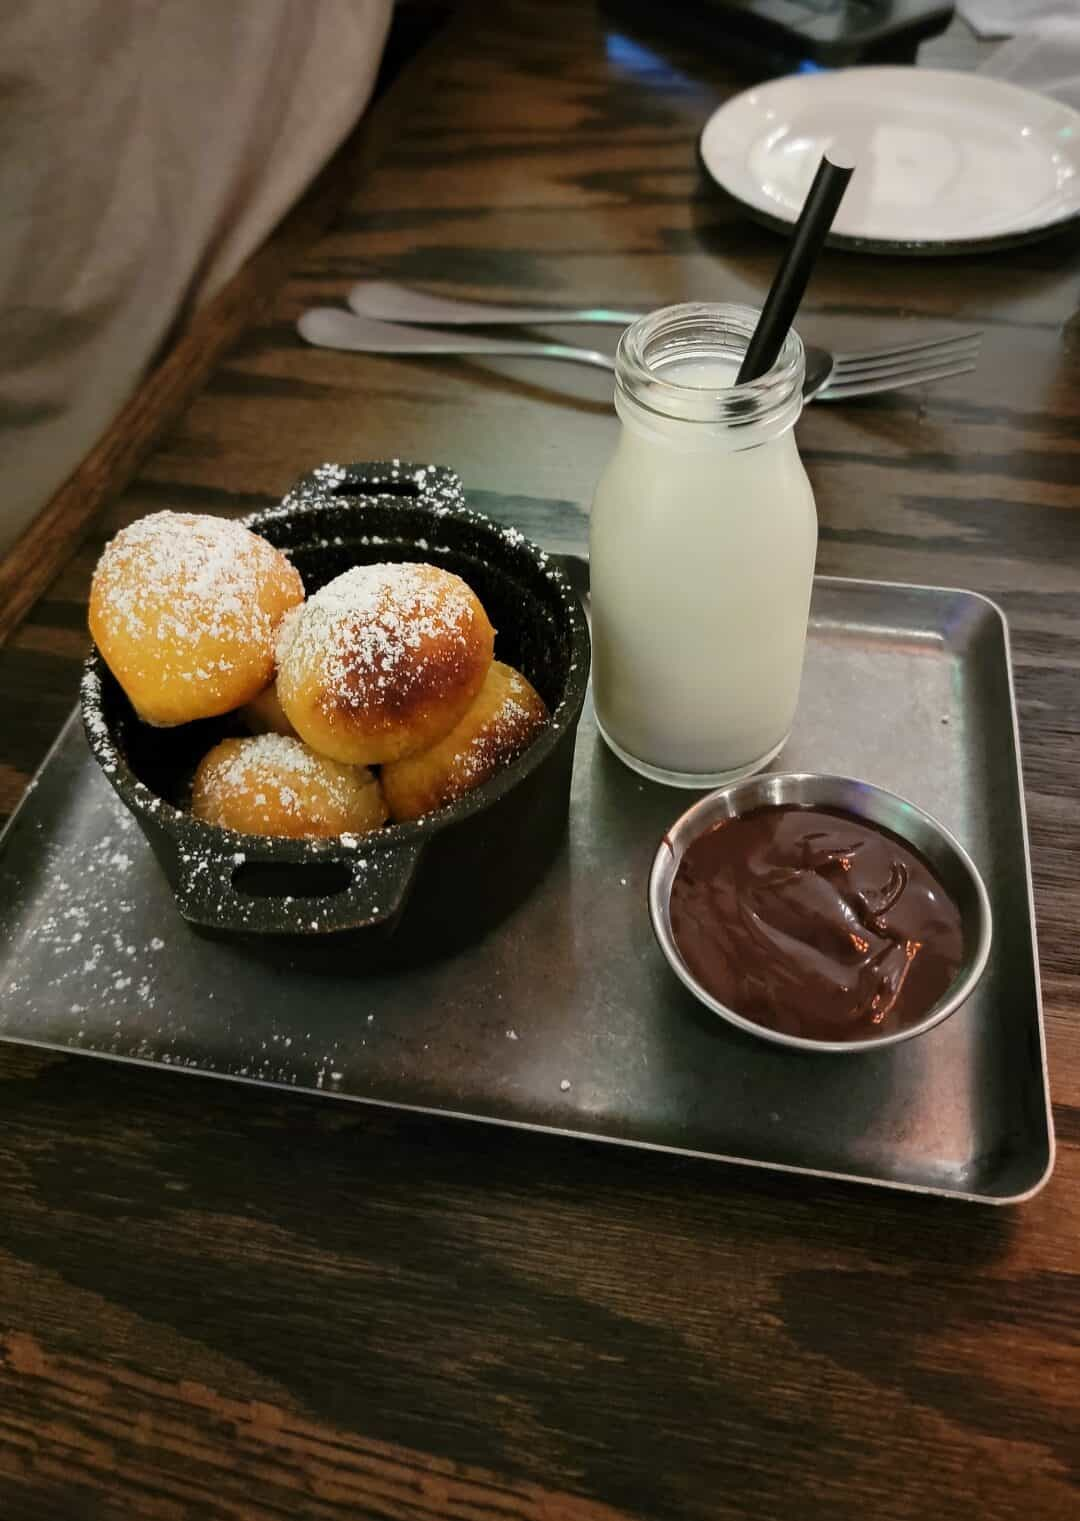 round donuts with milk and chocolate